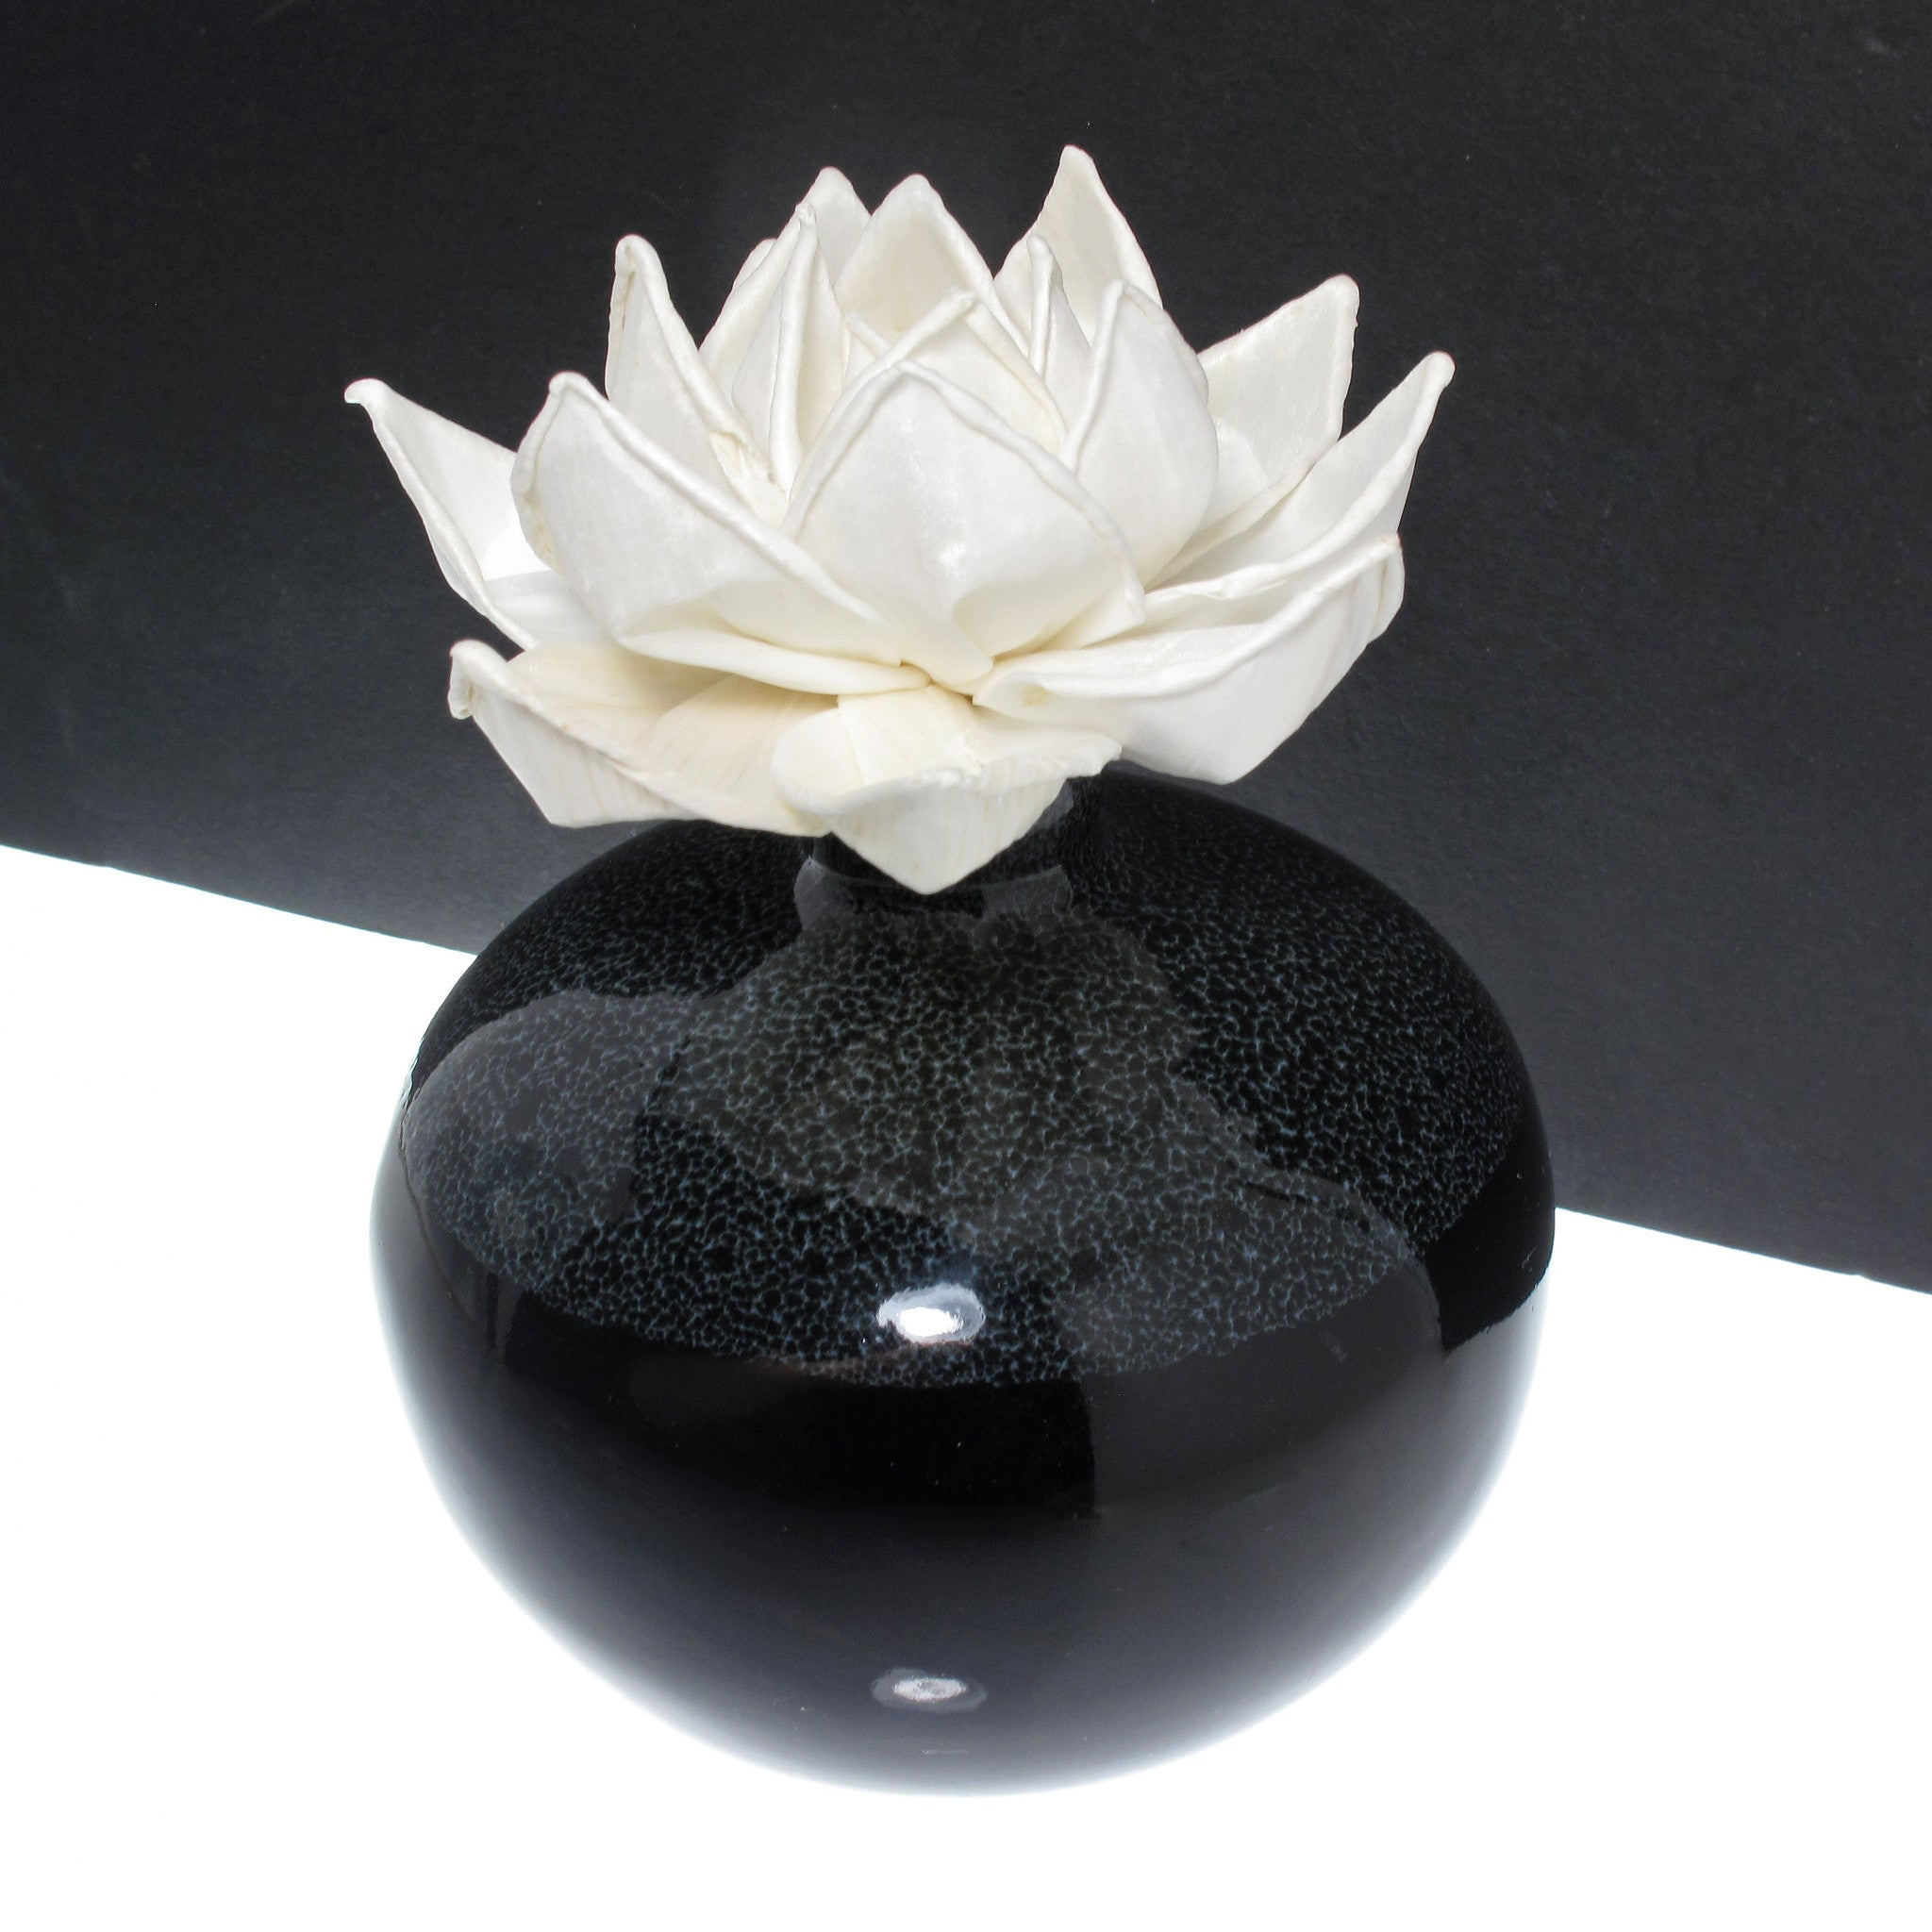 Sola wood flower aroma oil diffuser with a bendable cotton wire wick sola wood flower aroma oil diffuser with a bendable cotton wire wick lotus tropicazona izmirmasajfo